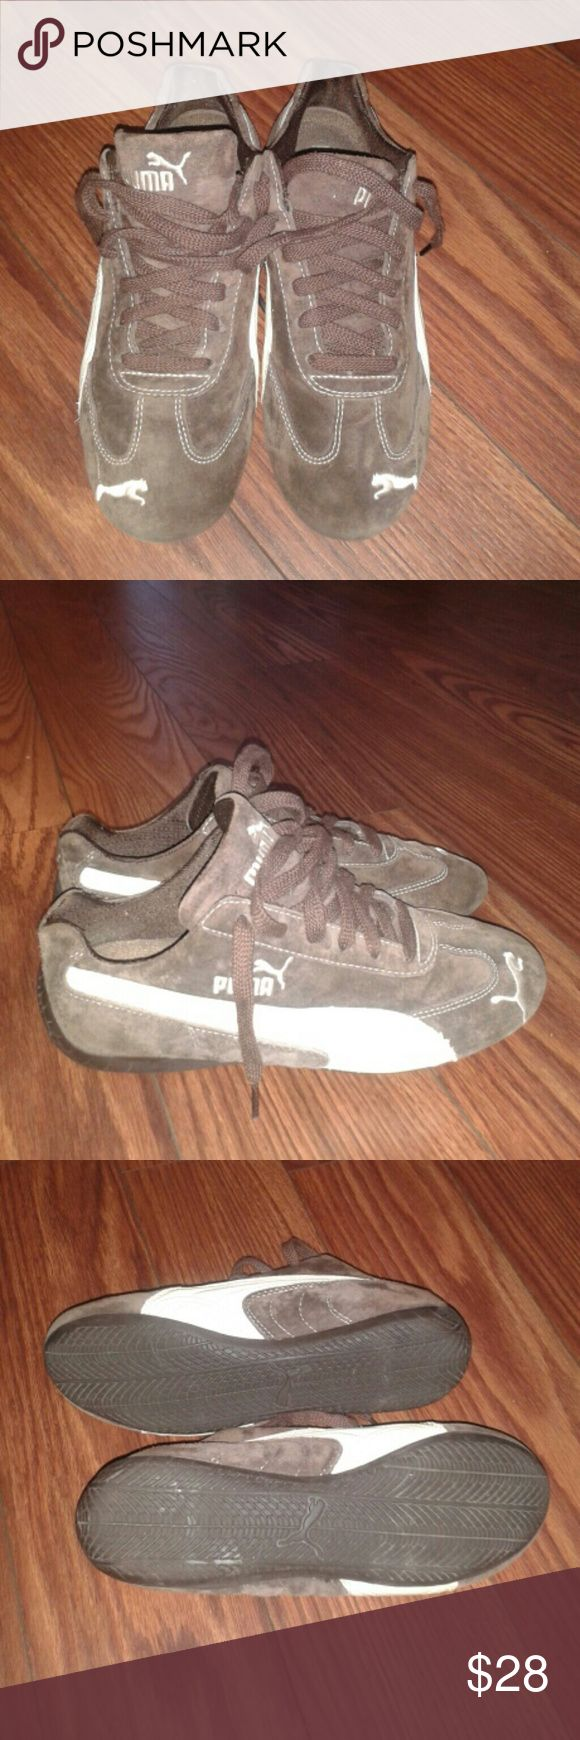 Pair of Brown Puma Sports Shoes Used but in good condition Puma brown suede sport shoes. Nice and clean. Puma Shoes Athletic Shoes